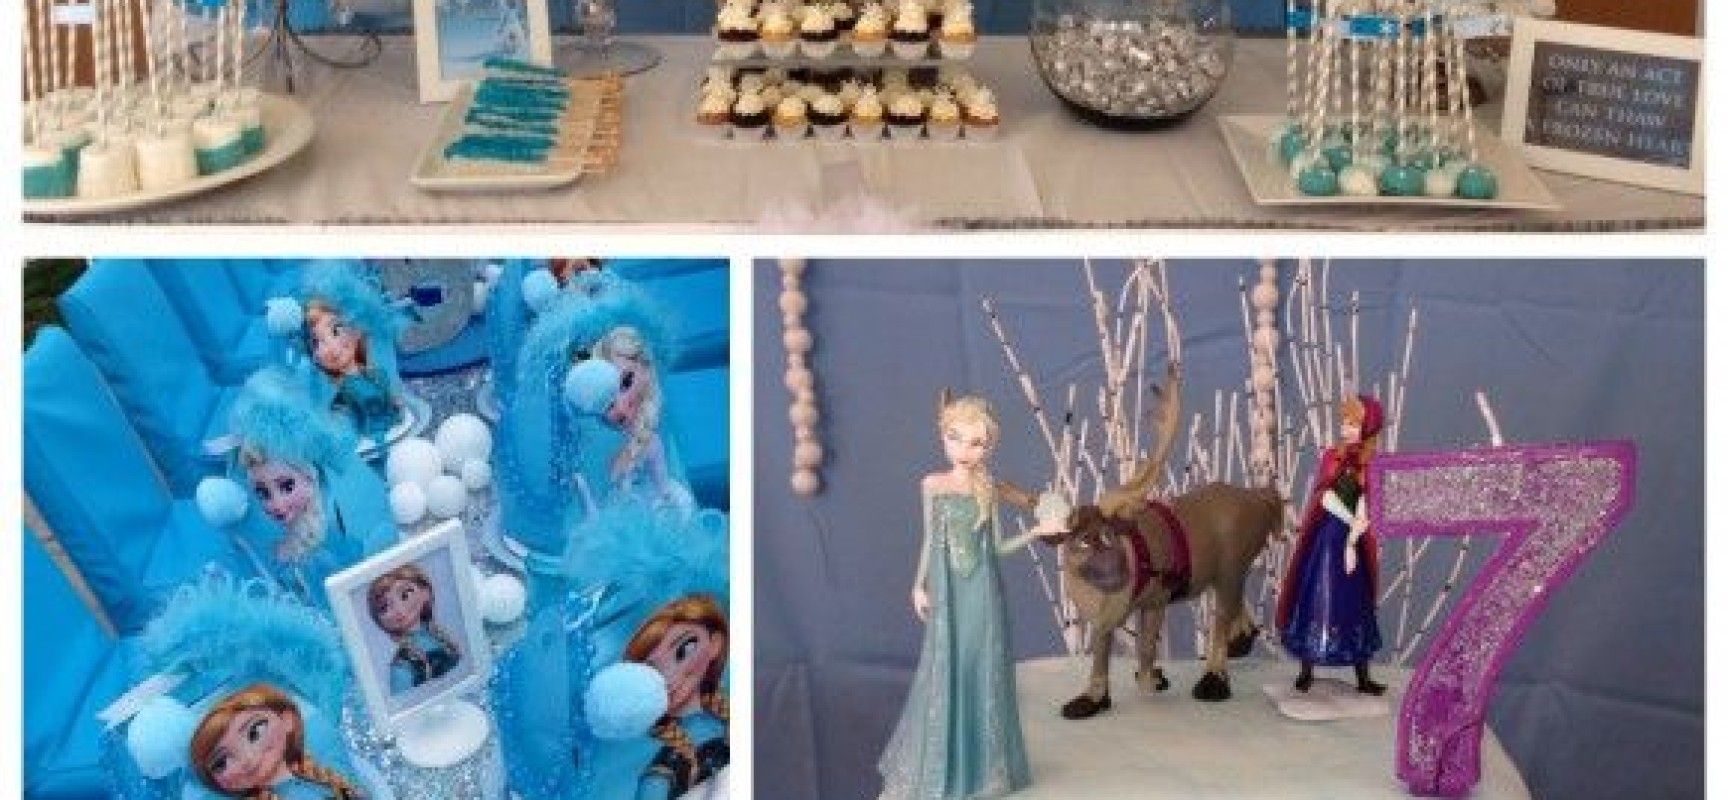 Collage de ideas para tu fiesta frozen. - Fabrica de ideas.